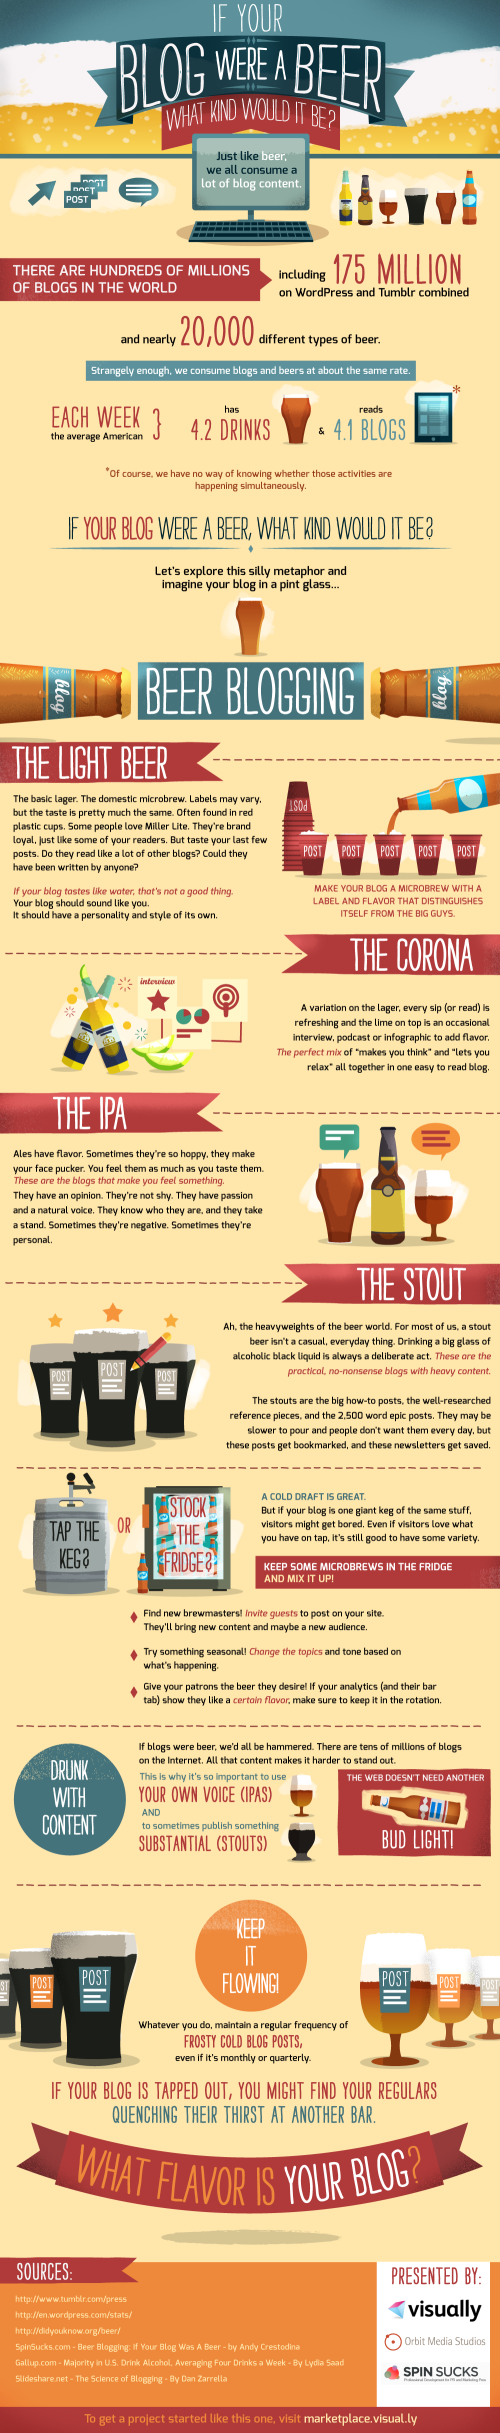 if-your-blog-were-a-beer_51b8fbc5c2e44